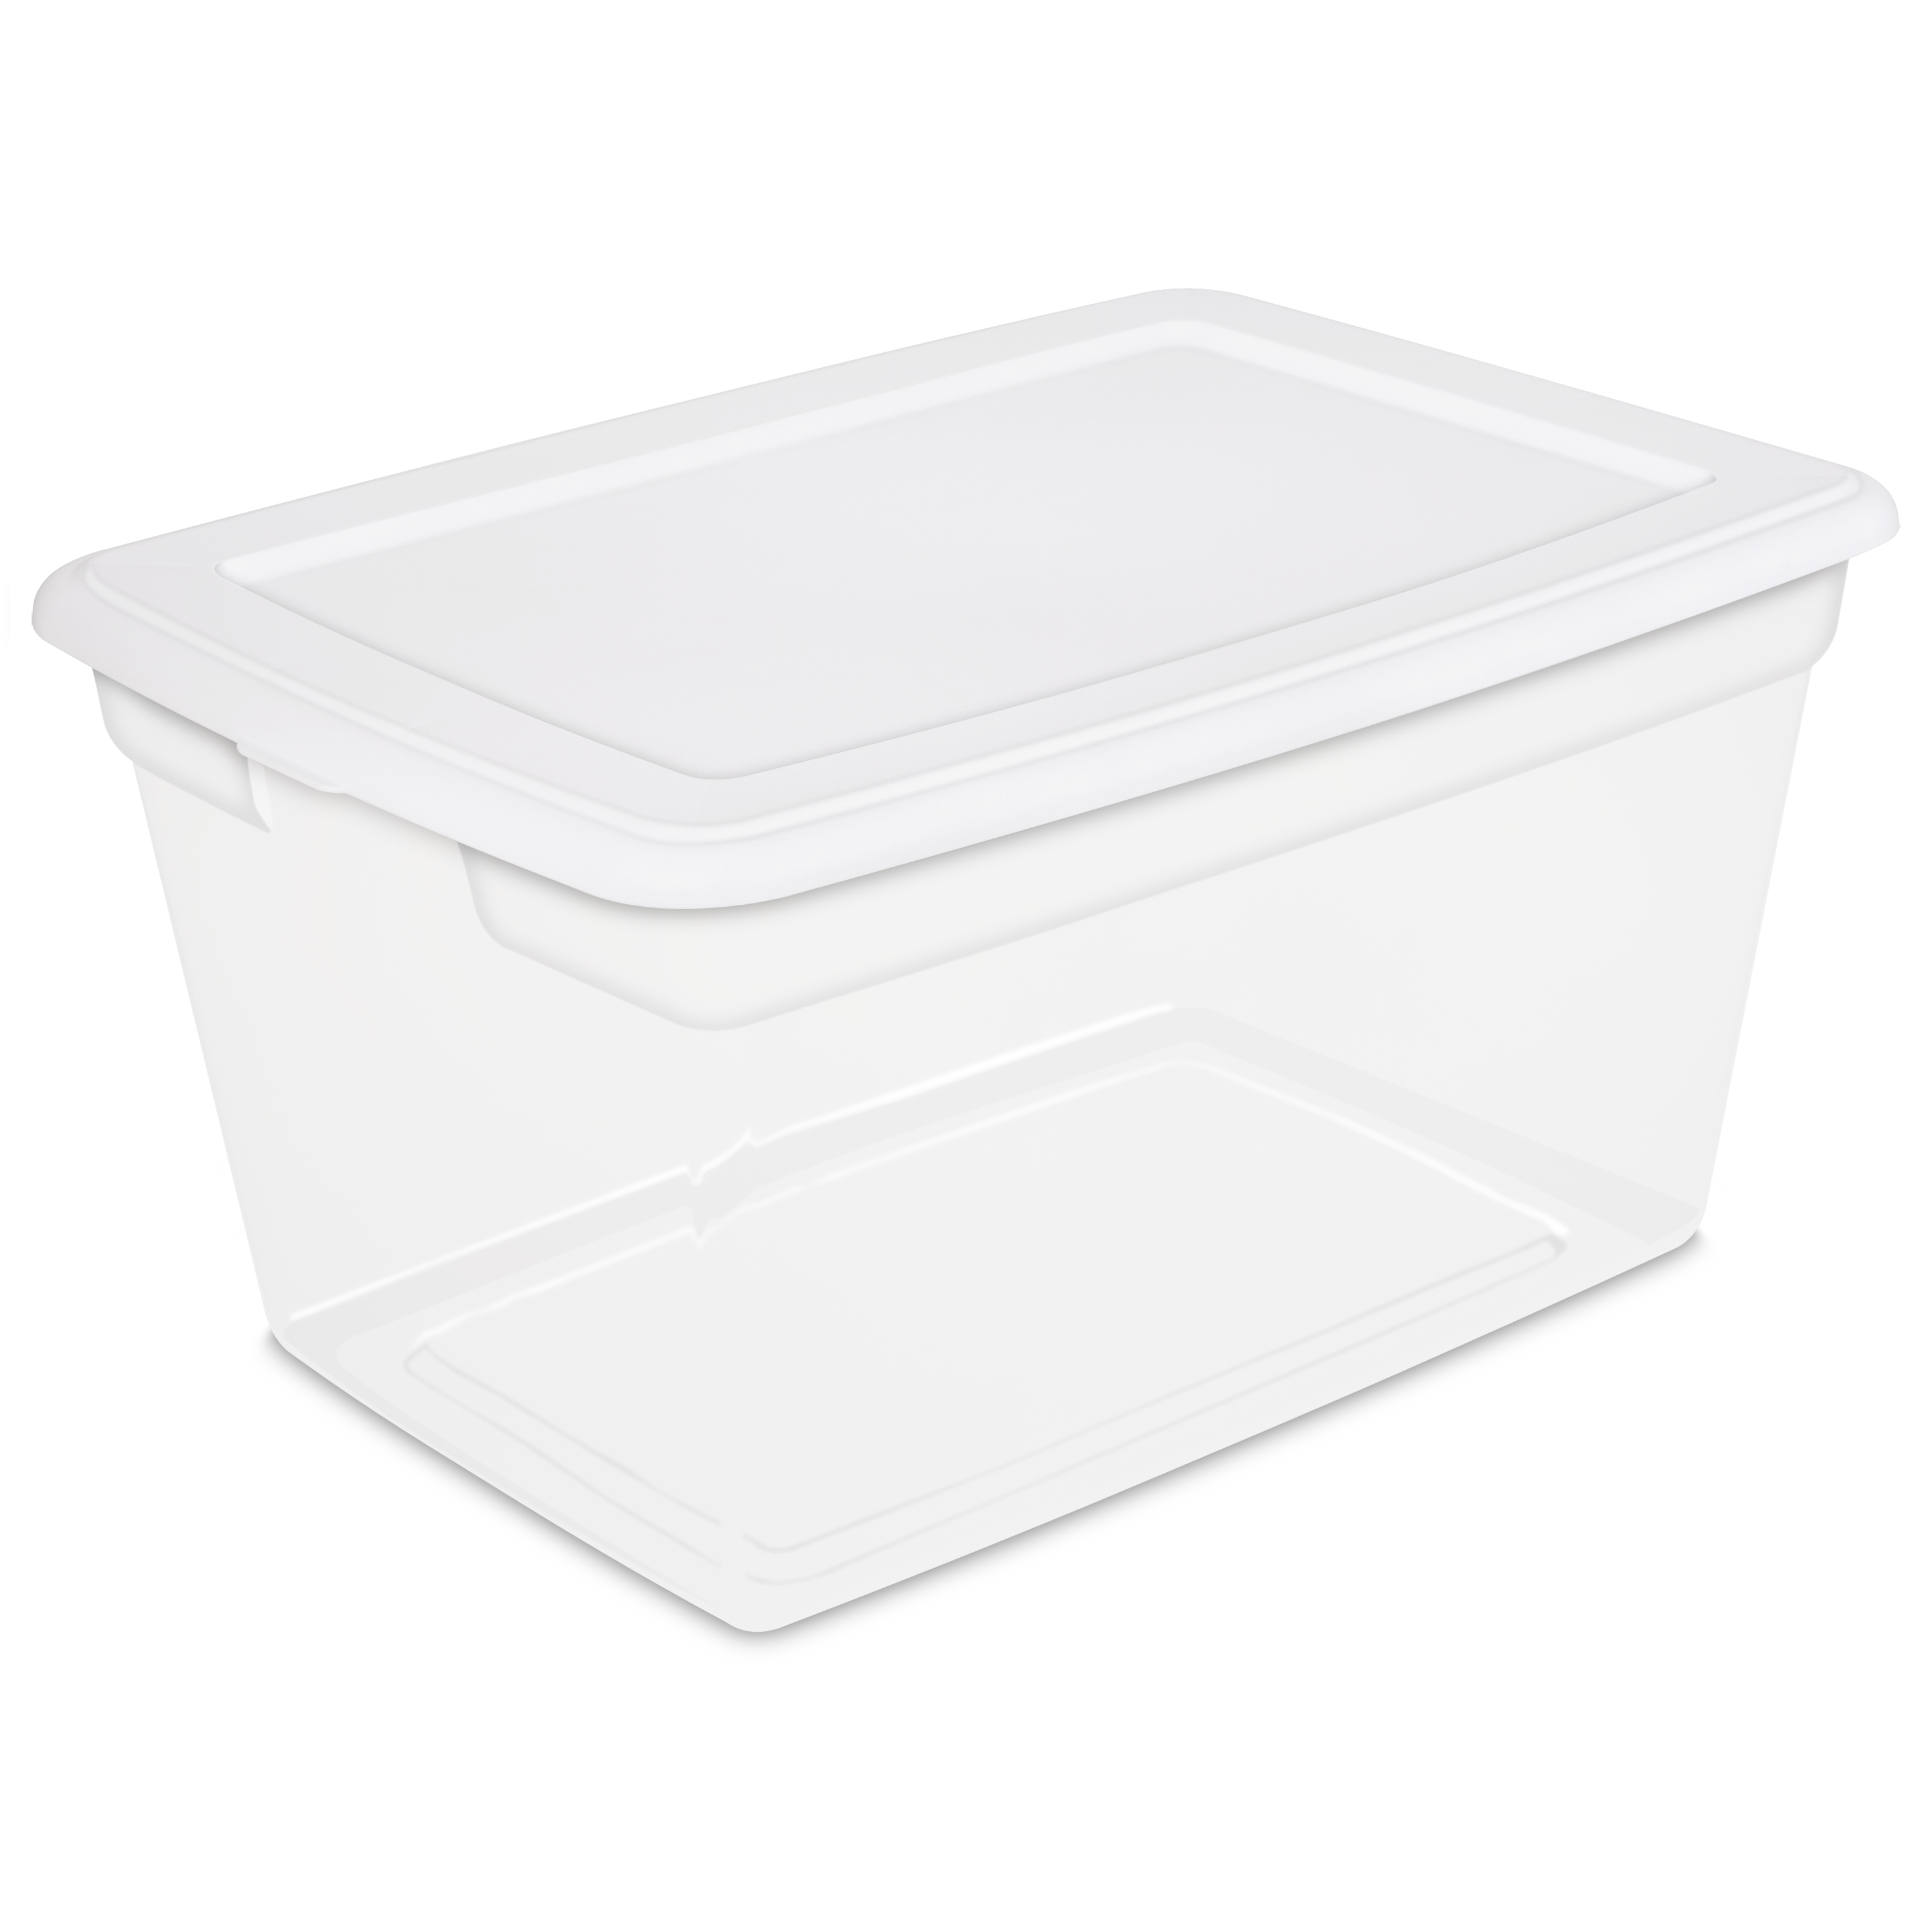 rectangl sistema homes storage rectangle decorating organization better container printable free klip basics it gardens tub cup labels